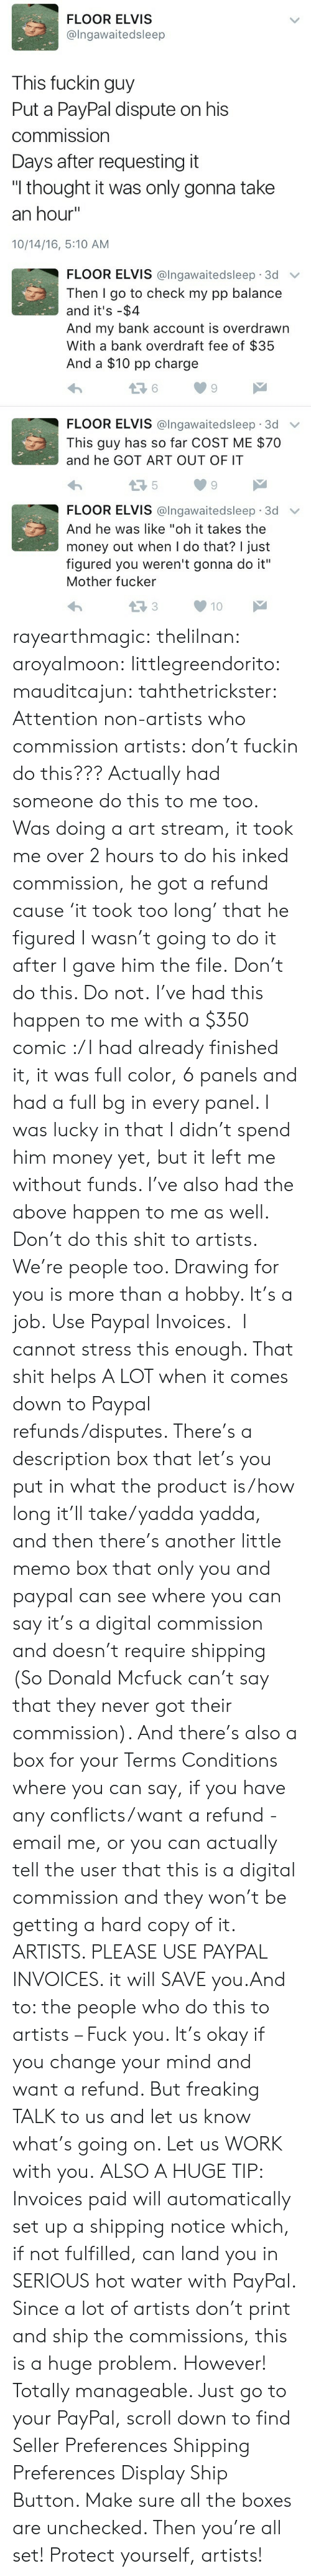 """Money, Tumblr, and Say It: FLOOR ELVIS  @Ingawaitedsleep  This fuckin guy  Put a PayPal dispute on his  commission  Days after requesting it  """"I thought it was only gonna take  an hour""""  10/14/16, 5:10 AM   FLOOR ELVIS @lngawaitedsleep 3d v  Then I go to check my pp balance  and it's -$4  And my bank account is overdrawn  With a bank overdraft fee of $35  And a $10 pp charge  6  9  FLOOR ELVIS @Ingawaitedsleep. 3d ﹀  This guy has so far COST ME $70  and he GOT ART OUT OF IT  5  9   FLOOR ELVIS @lngawaitedsleep 3d v  And he was like """"oh it takes the  money out when I do that? I just  figured you weren't gonna do it""""  Mother fucker  13310 rayearthmagic: thelilnan:  aroyalmoon:  littlegreendorito:  mauditcajun:  tahthetrickster:  Attention non-artists who commission artists: don't fuckin do this???  Actually had someone do this to me too. Was doing a art stream, it took me over 2 hours to do his inked commission, he got a refund cause 'it took too long' that he figured I wasn't going to do it after I gave him the file. Don't do this. Do not.  I've had this happen to me with a $350 comic :/ I had already finished it, it was full color, 6 panels and had a full bg in every panel. I was lucky in that I didn't spend him money yet, but it left me without funds. I've also had the above happen to me as well. Don't do this shit to artists. We're people too. Drawing for you is more than a hobby. It's a job.   Use Paypal Invoices. I cannot stress this enough. That shit helps A LOT when it comes down to Paypal refunds/disputes. There's a description box that let's you put in what the product is/how long it'll take/yadda yadda, and then there's another little memo box that only you and paypal can see where you can say it's a digital commission and doesn't require shipping (So Donald Mcfuck can't say that they never got their commission). And there's also a box for your Terms  Conditions where you can say, if you have any conflicts/want a refund - email me, or you can actually tell """